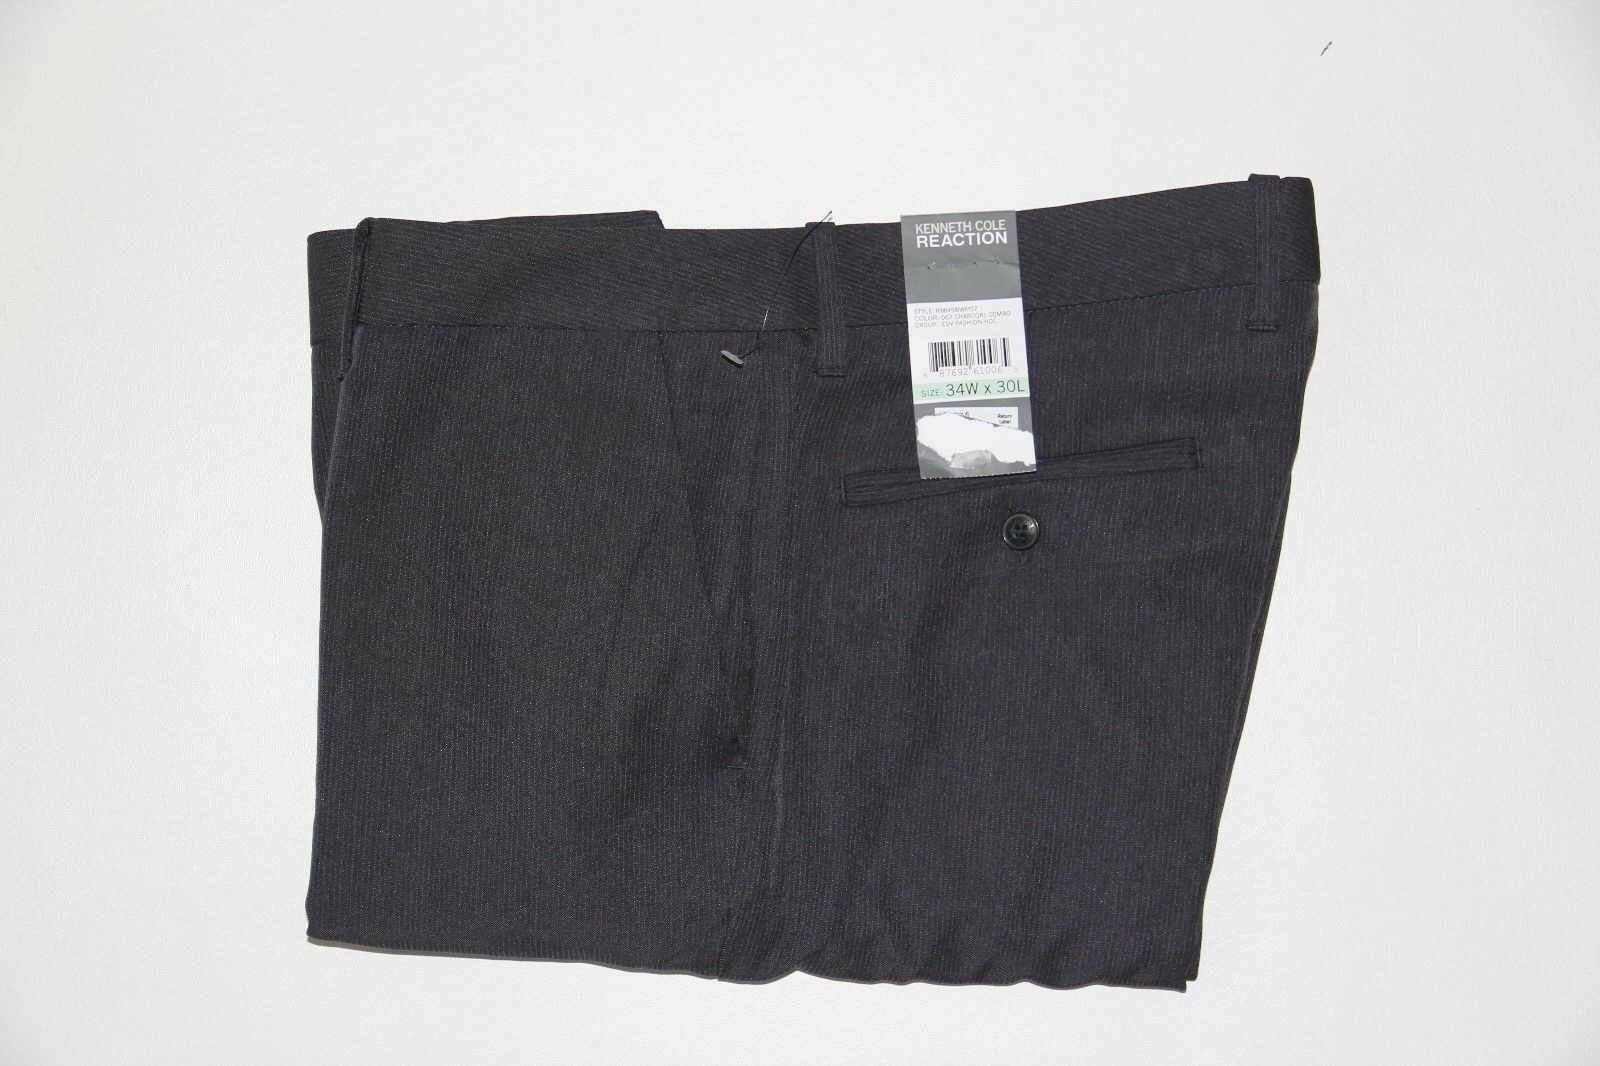 New Kenneth Cole Charcoal Men's 34x30 Flat Front Pinstripe Dress Pants